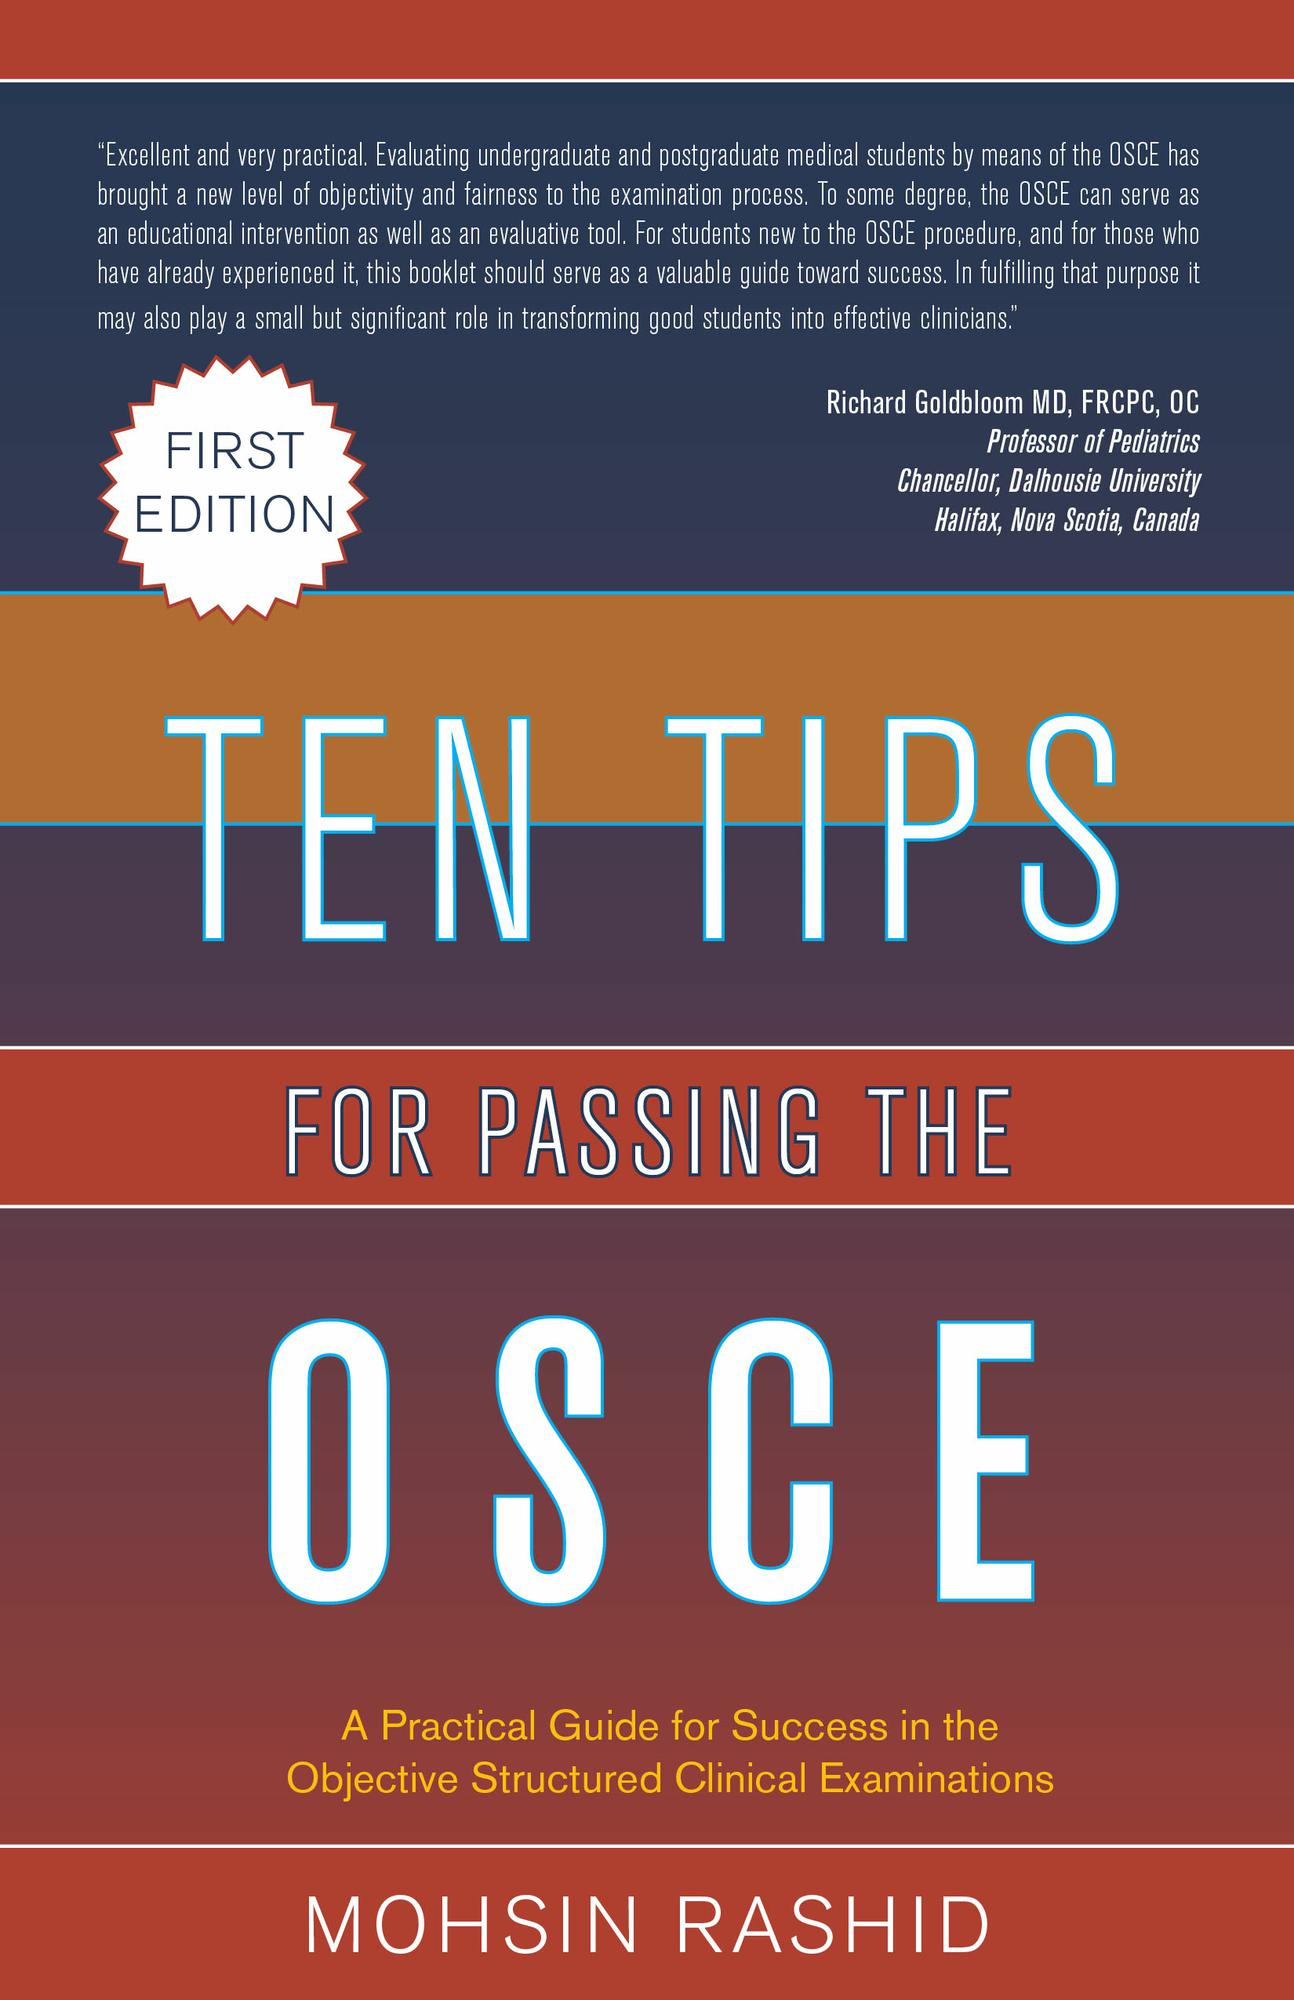 Ten Tips for Passing the OSCE: A Practical Guide For Success In The Objective Structured Clinical Examinations